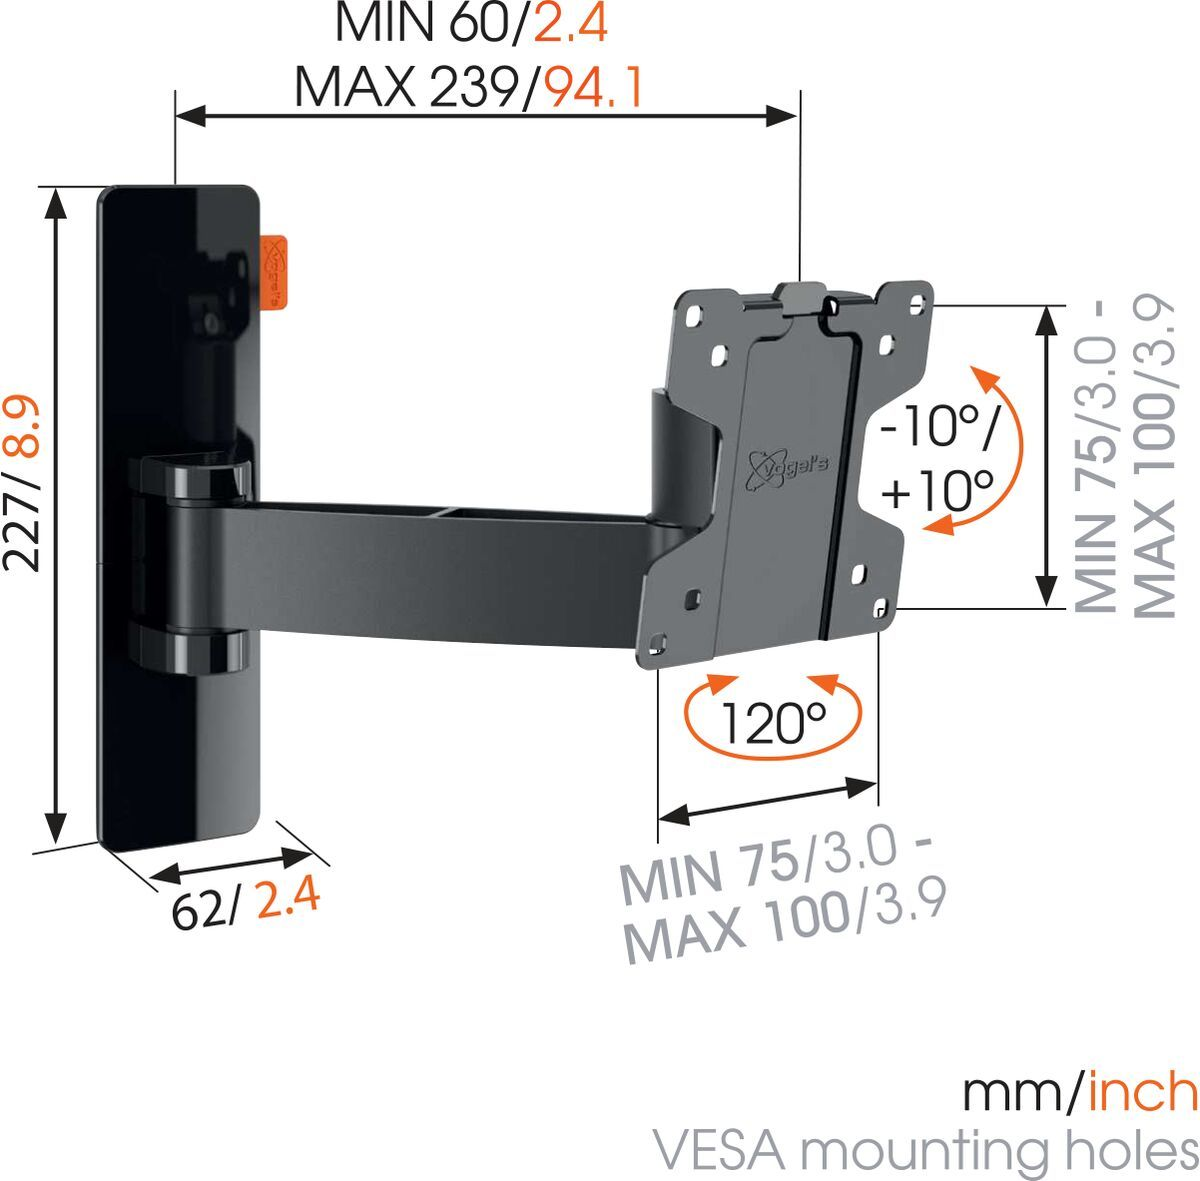 Vogel's WALL 2025 Full-Motion TV Wall Mount (black) - Suitable for 17 up to 26 inch TVs - Motion (up to 120°) - Tilt -10°/+10° - Dimensions